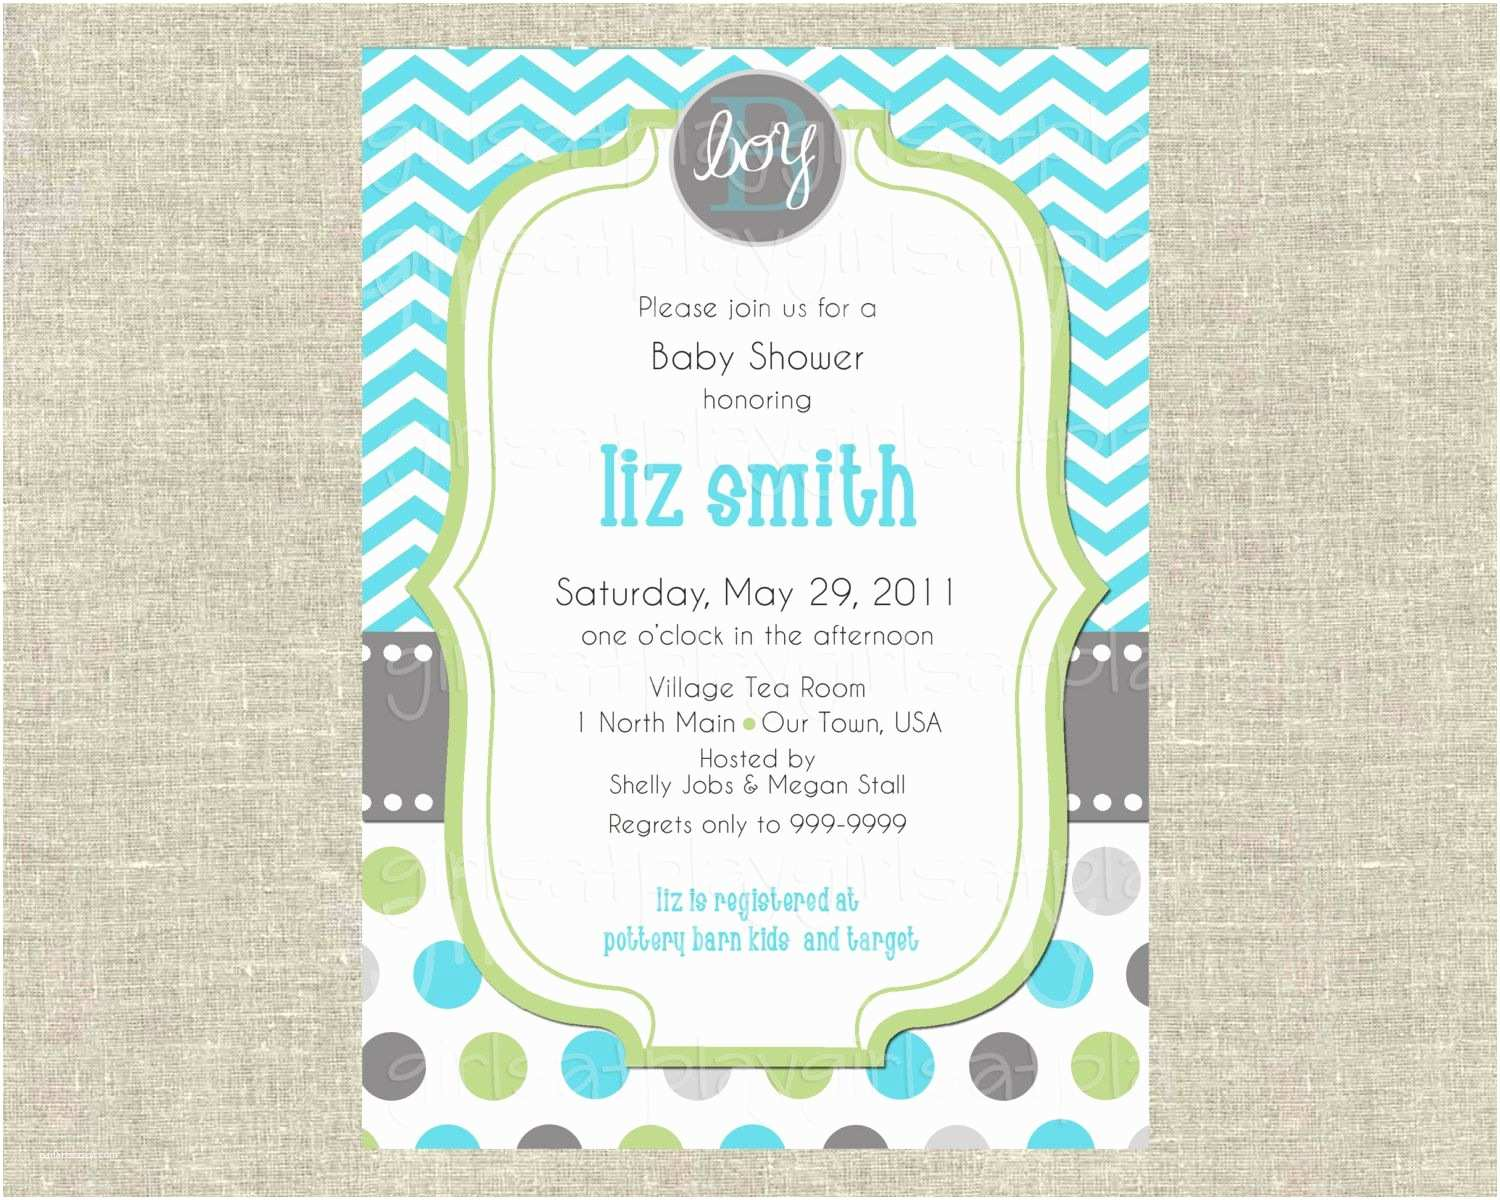 Baby Shower Invitation Cards Baby Shower Invitations Baby Shower Invitations Girl